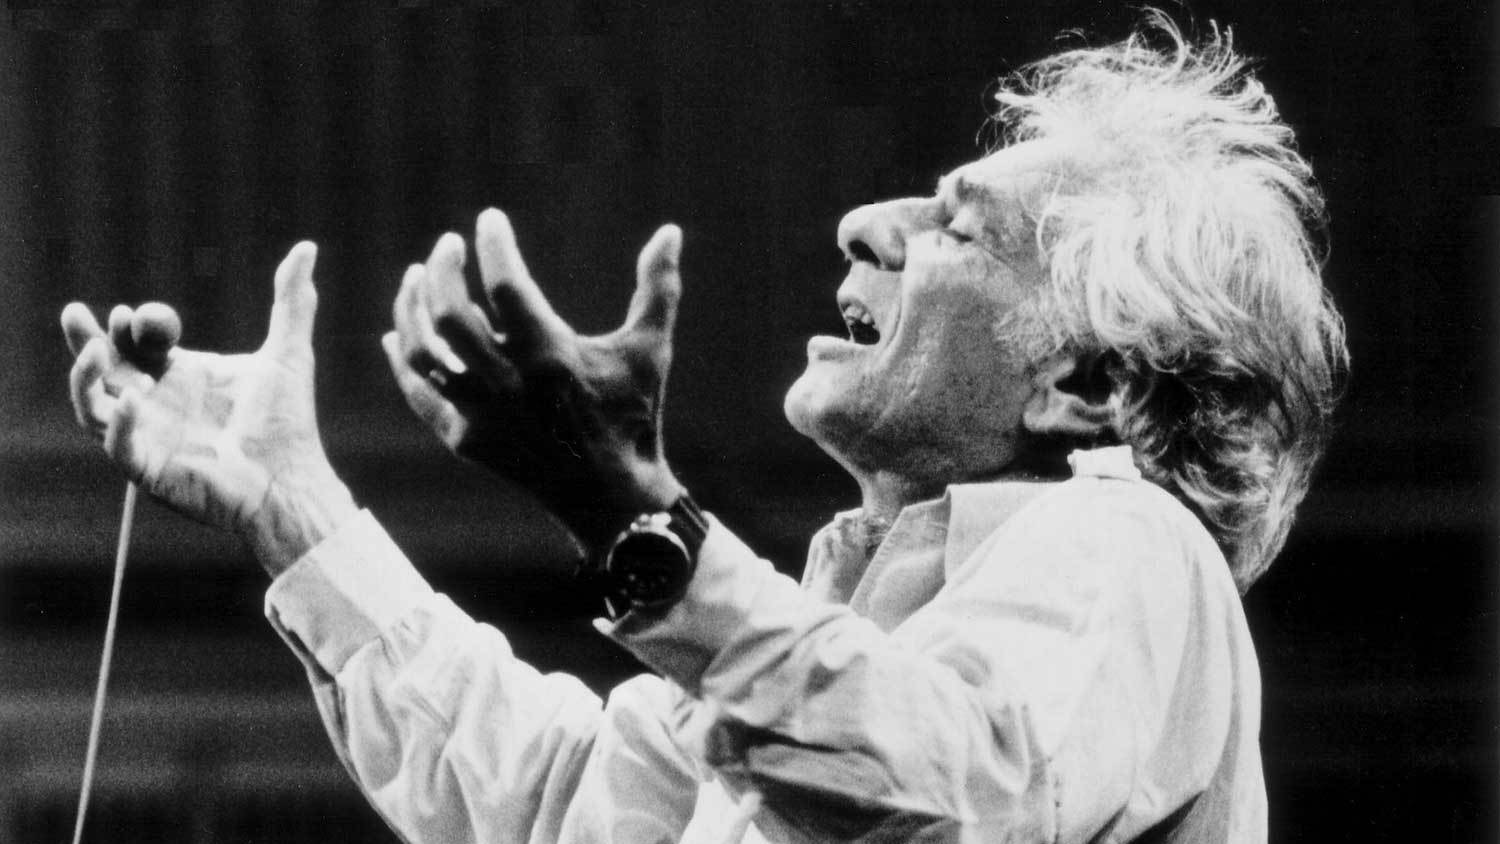 Leonard-Bernstein-Paul-de-Hueck-Courtesy-of-the-Leonard-Bernstein-Office.jpg?mtime=20180523130731#asset:21897